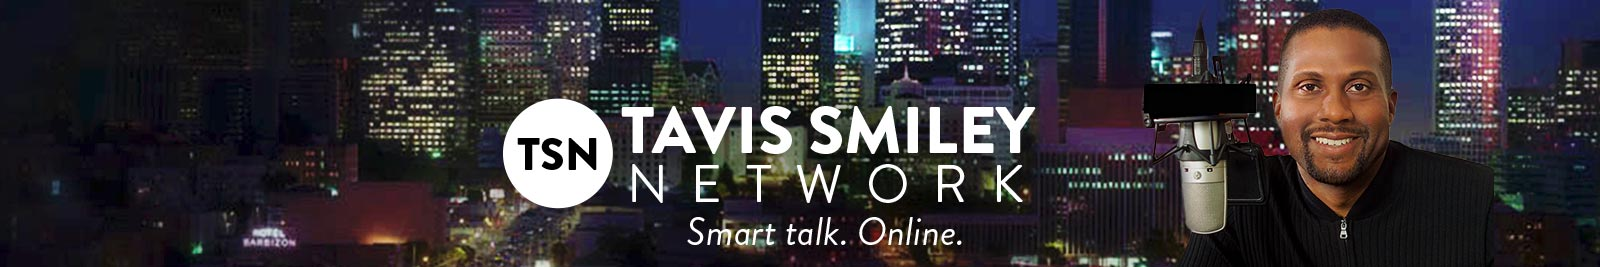 TSN: Tavis Smiley Network